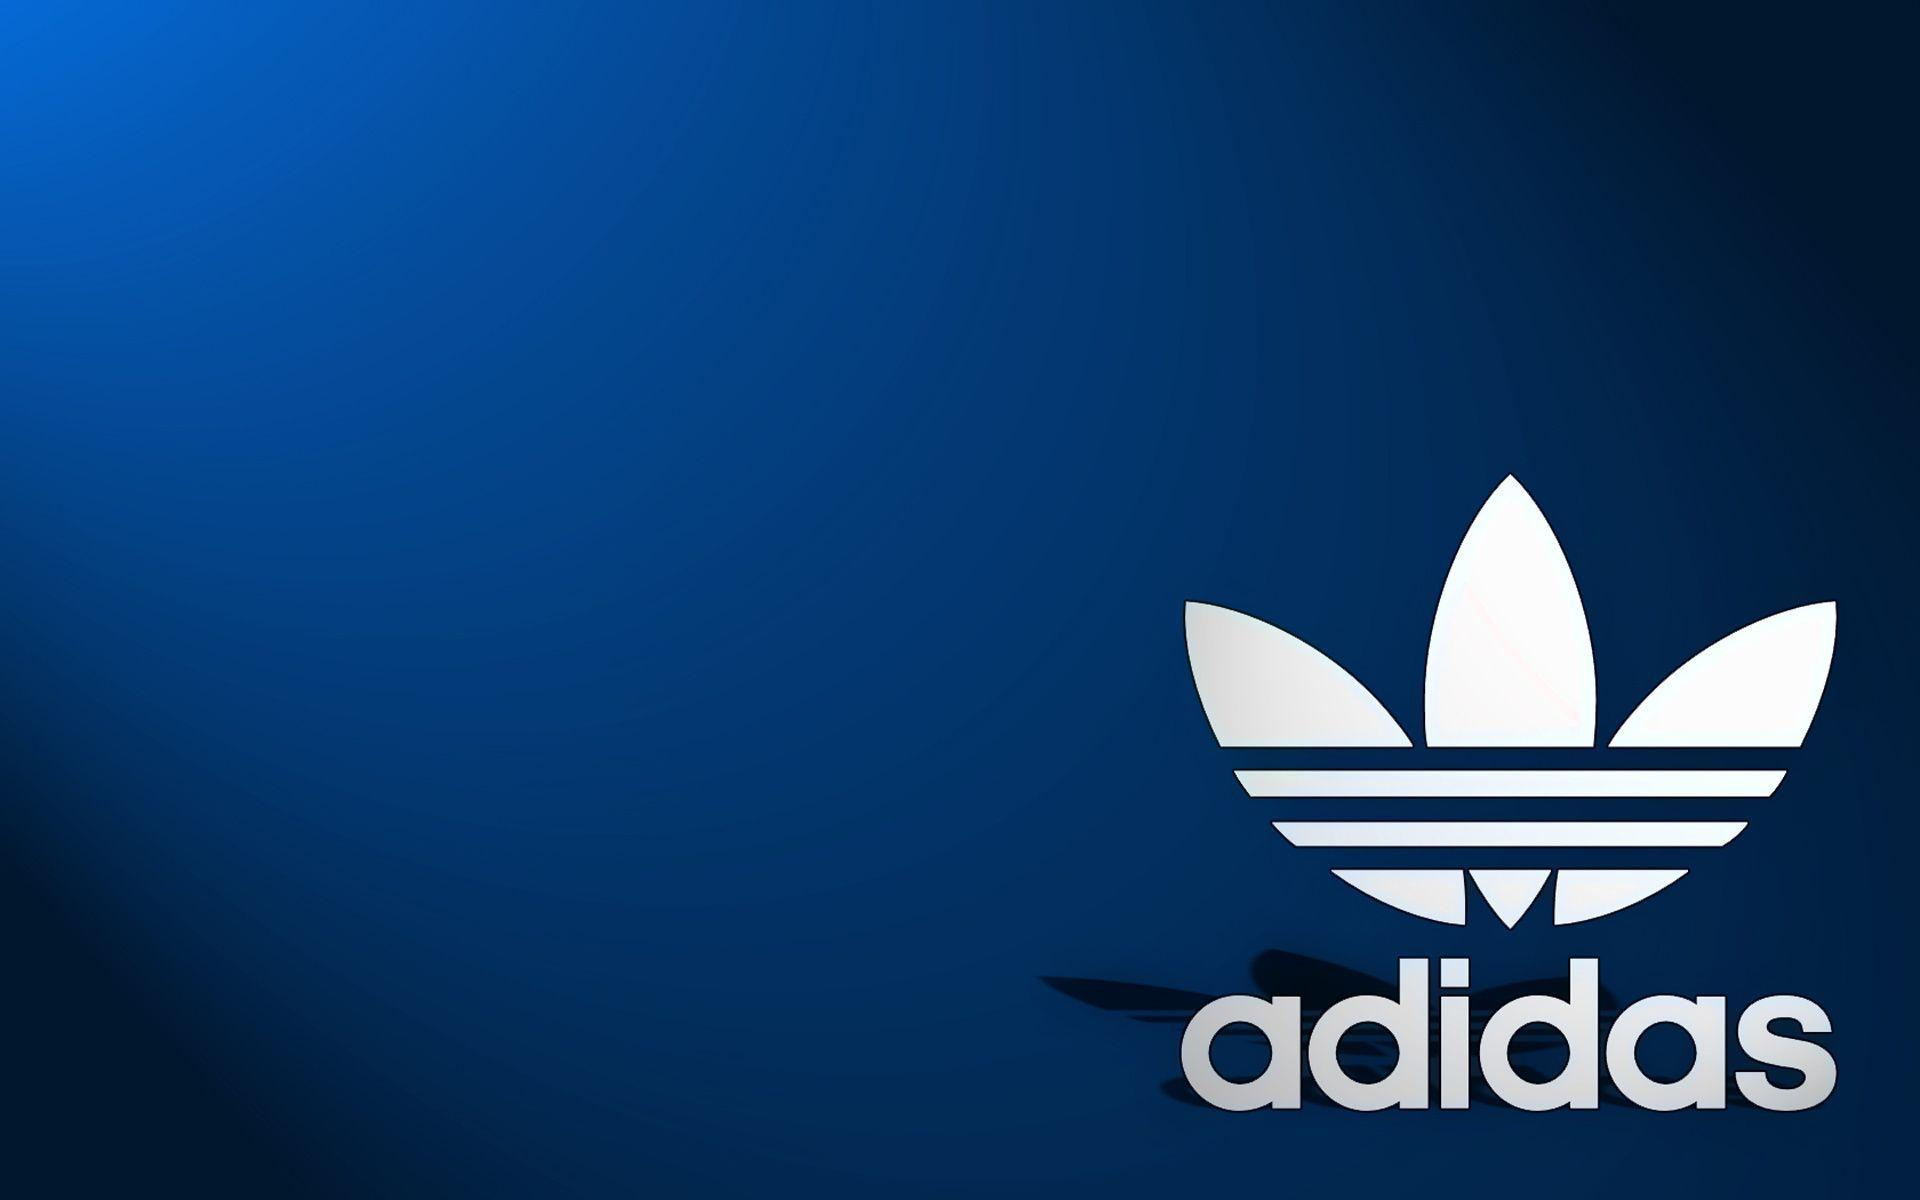 Adidas Logo wallpaper - 444741